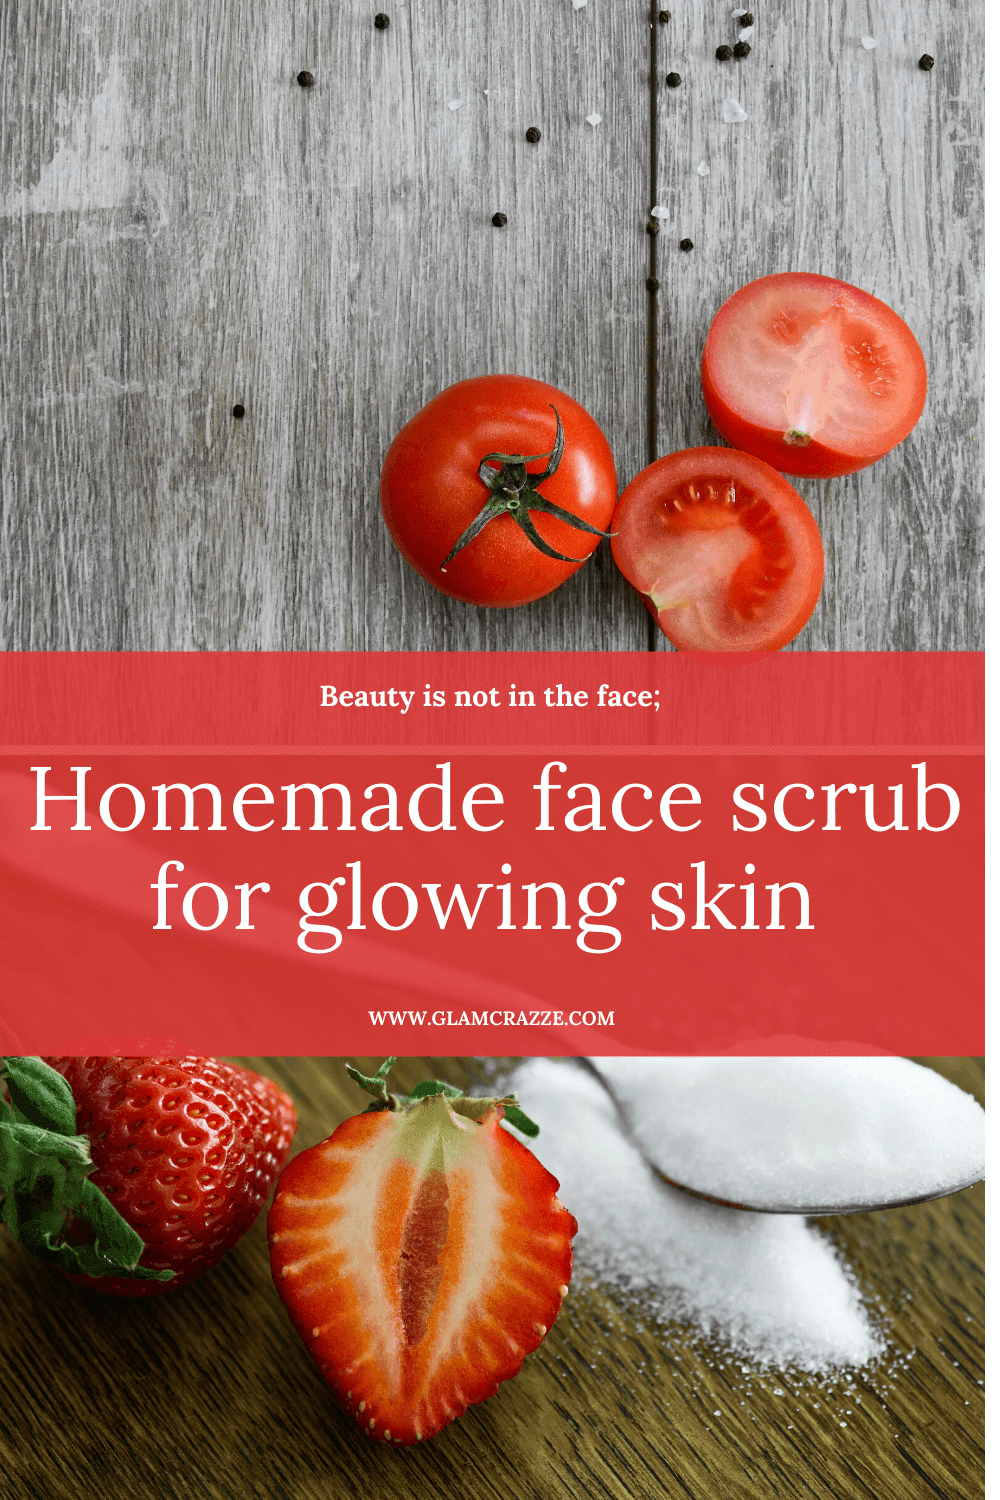 Homemade face scrub for glowing skin using tomato